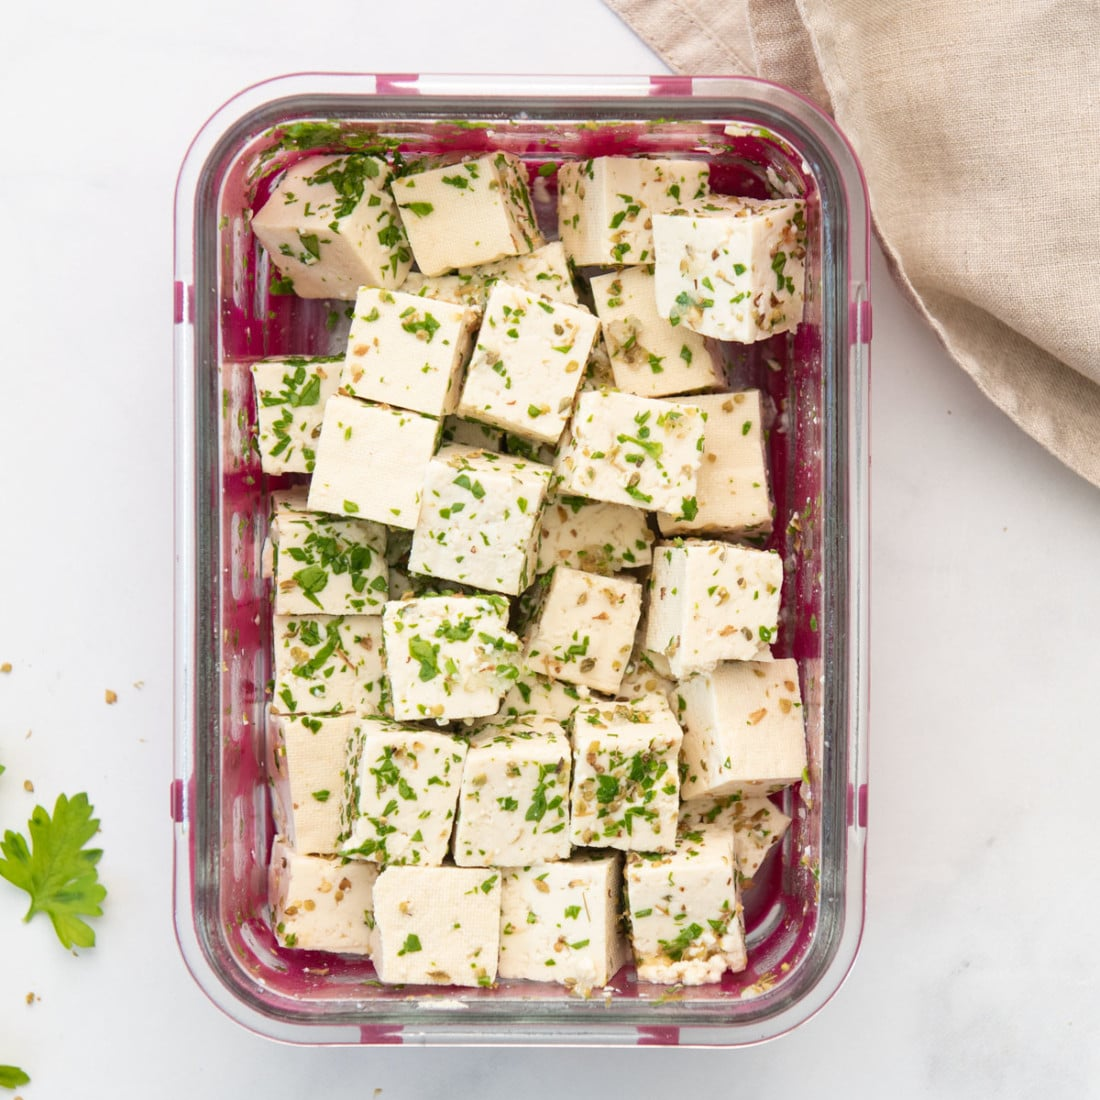 container with tofu feta cubes coated in Greek marinade